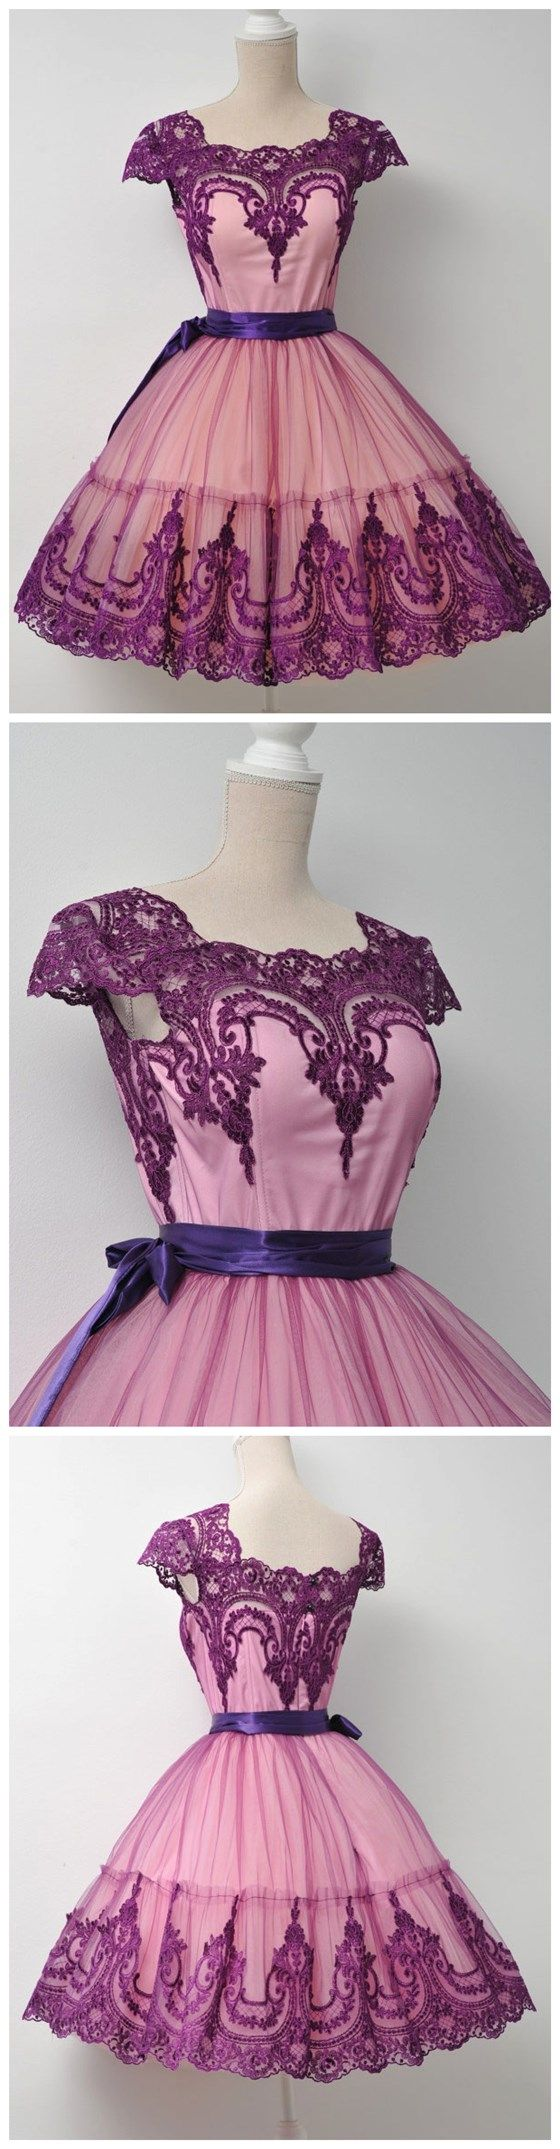 best dances images on pinterest homecoming dresses night out